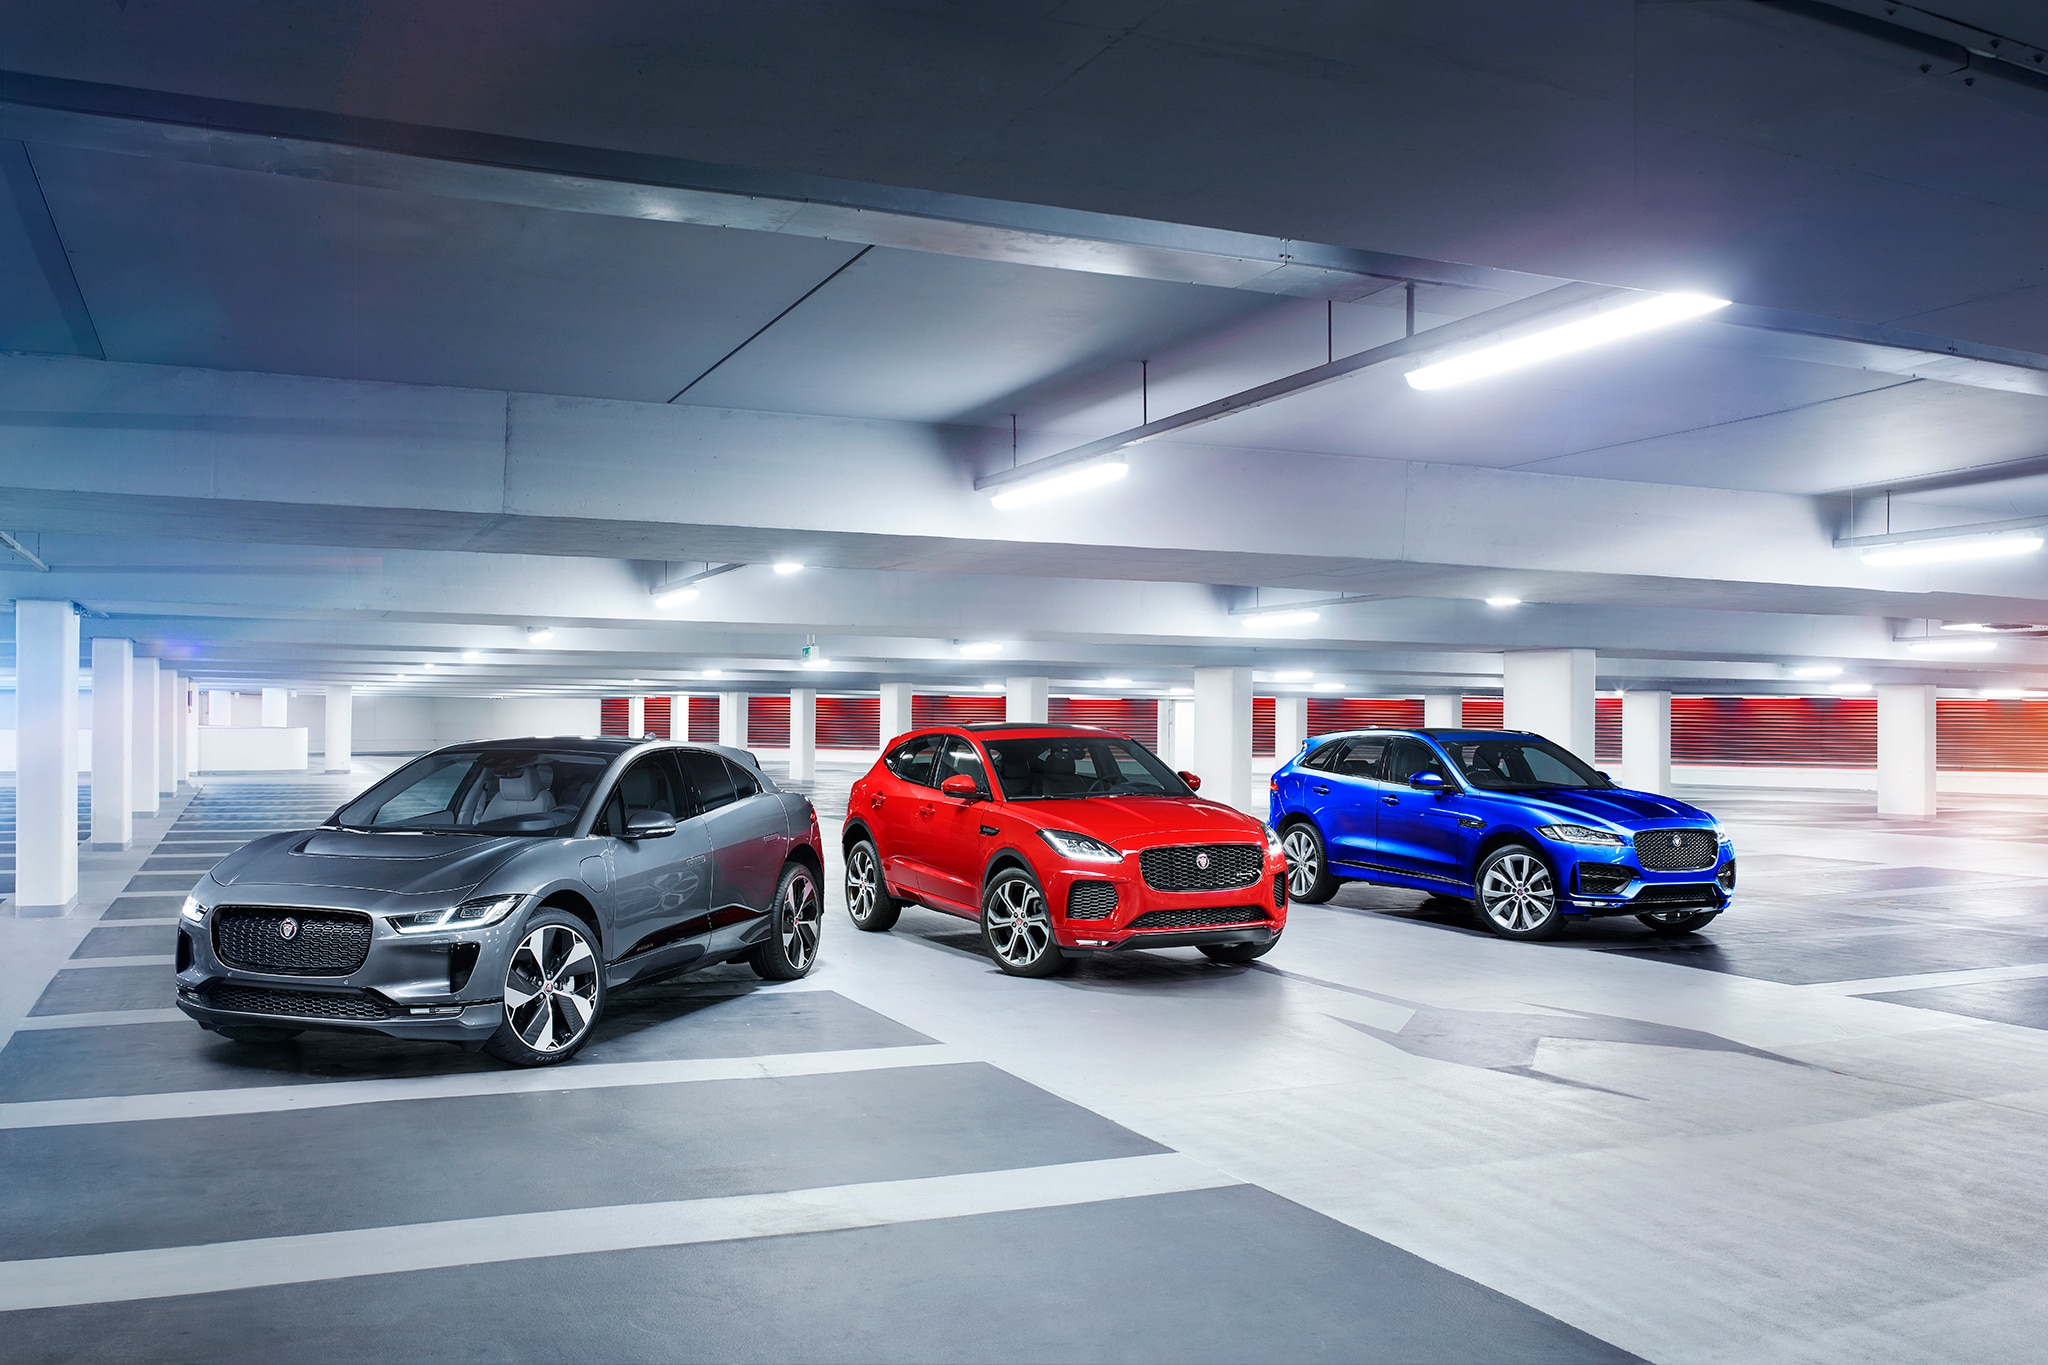 ar news pace smaller international jaguar crossover first testing up dealers e american